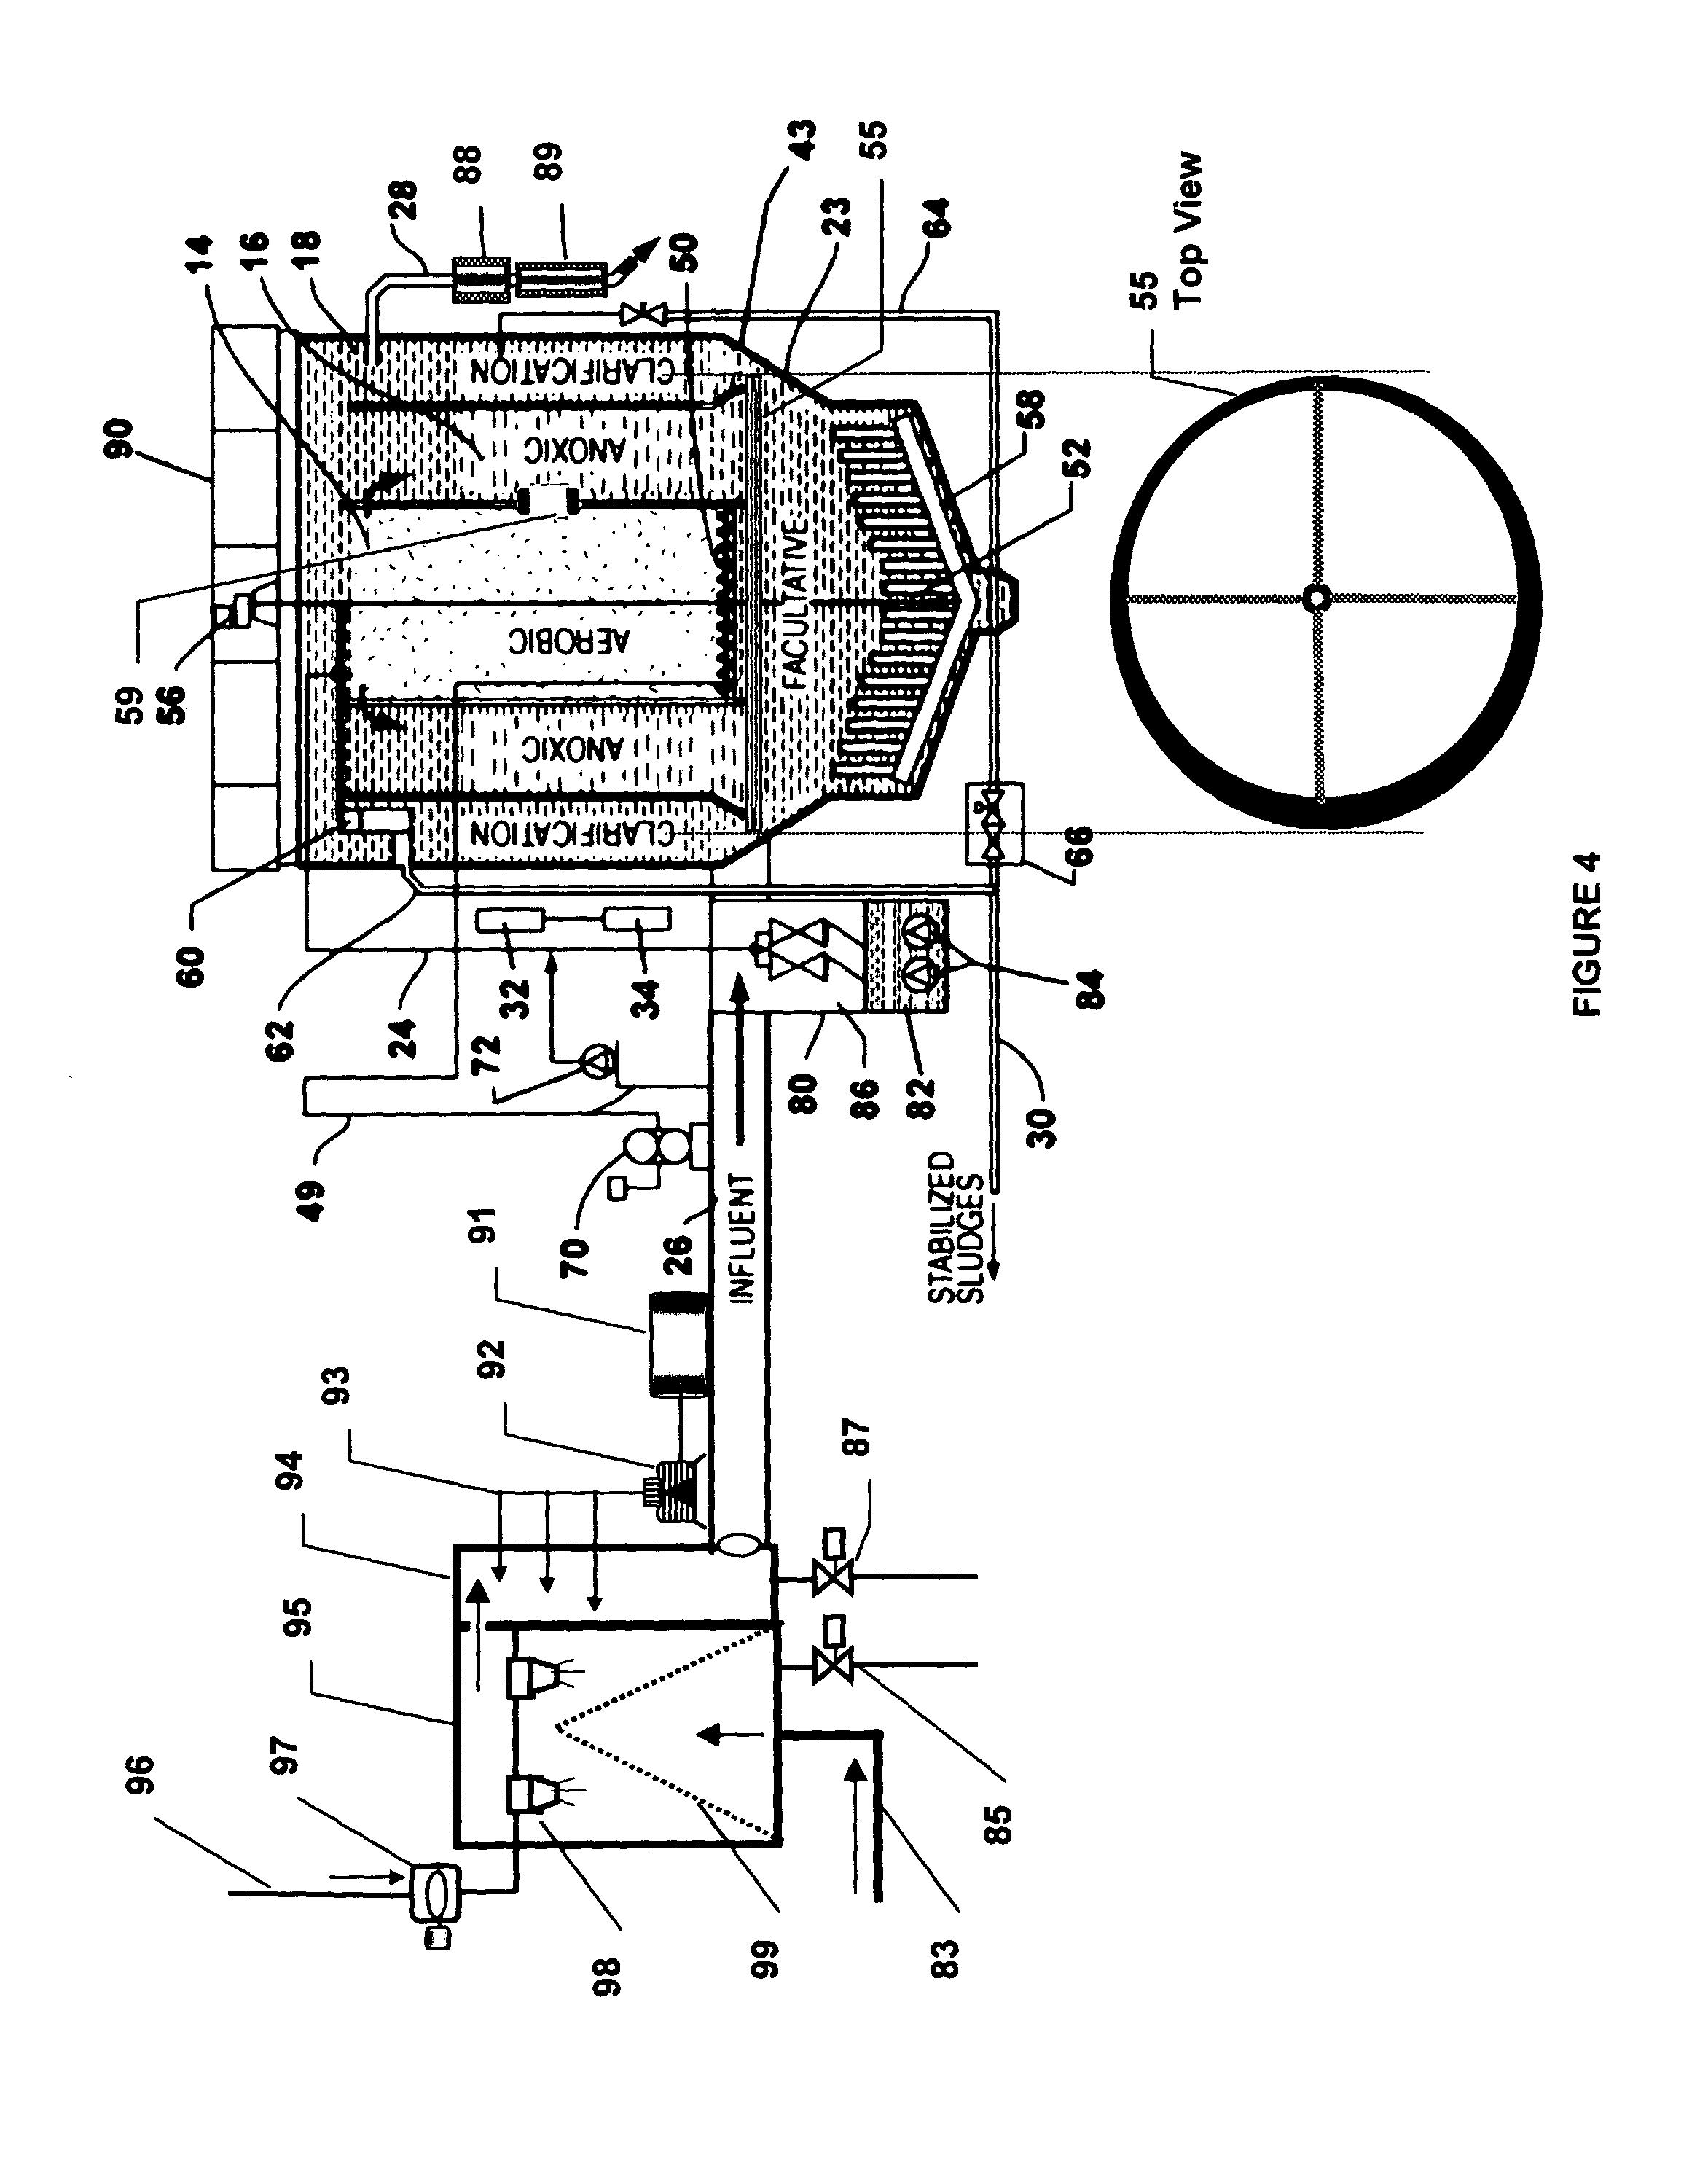 2002 chevy silverado 4wd wiring diagram